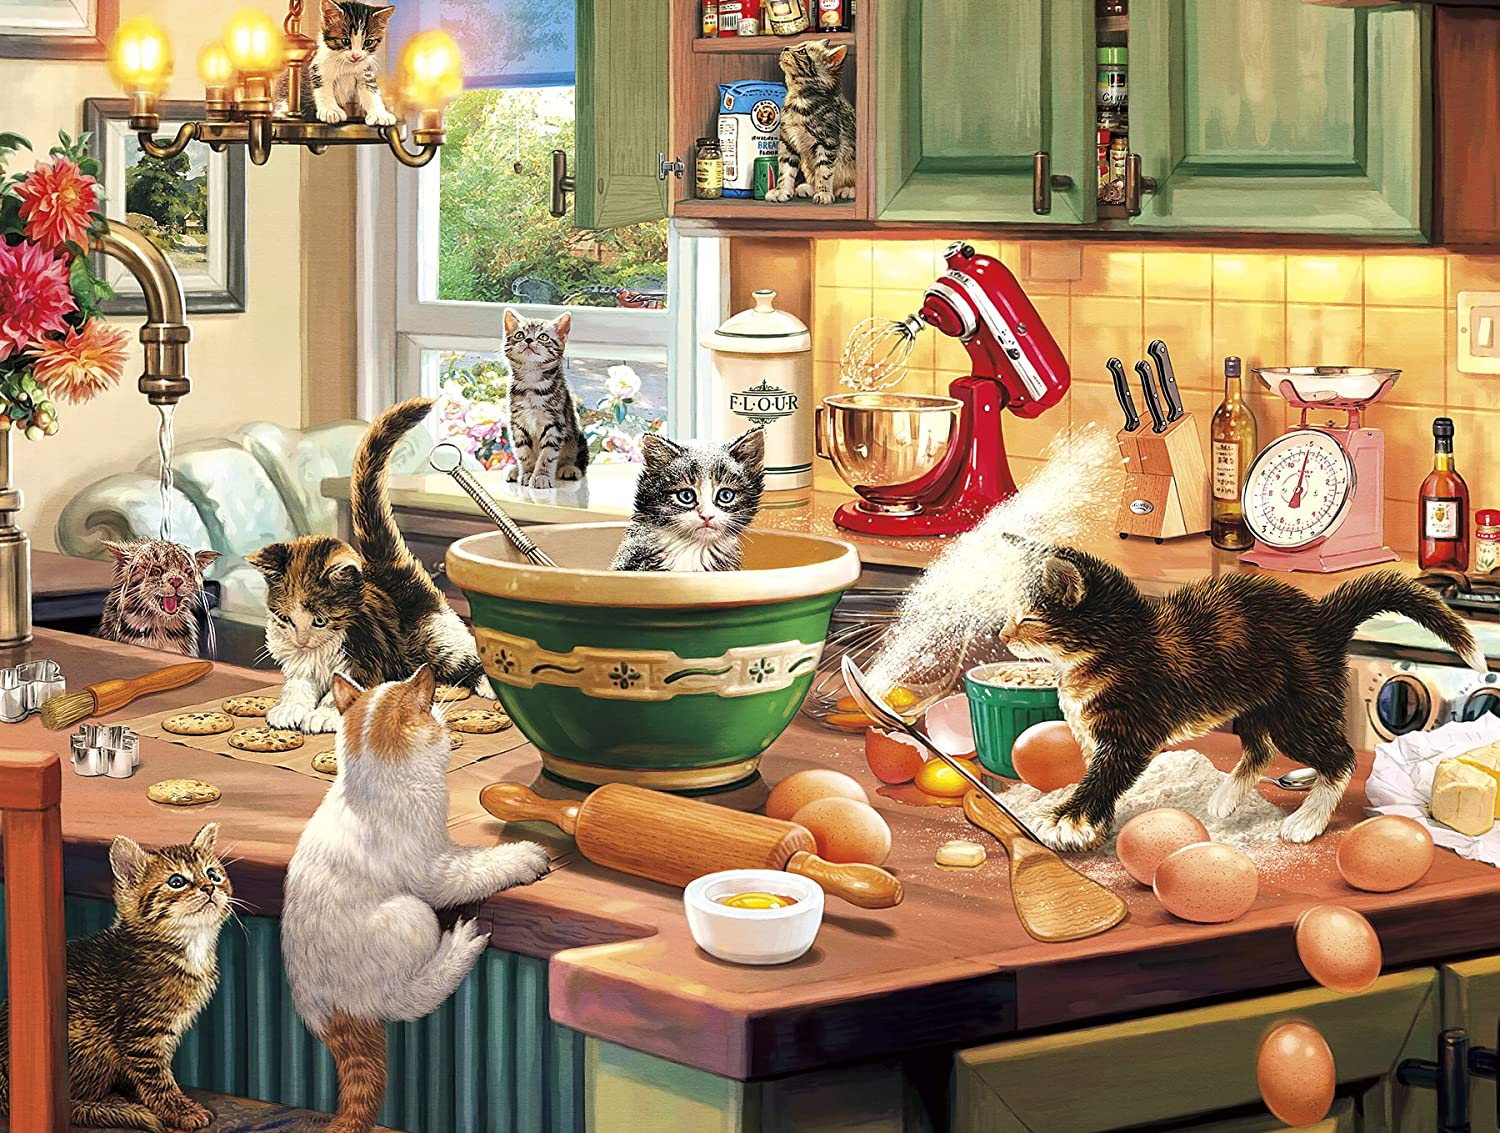 "Buffalo Games - Kitten Kitchen Capers - 750 Piece Jigsaw Puzzle, Brown,white,red,green, 24""L X 18""W"